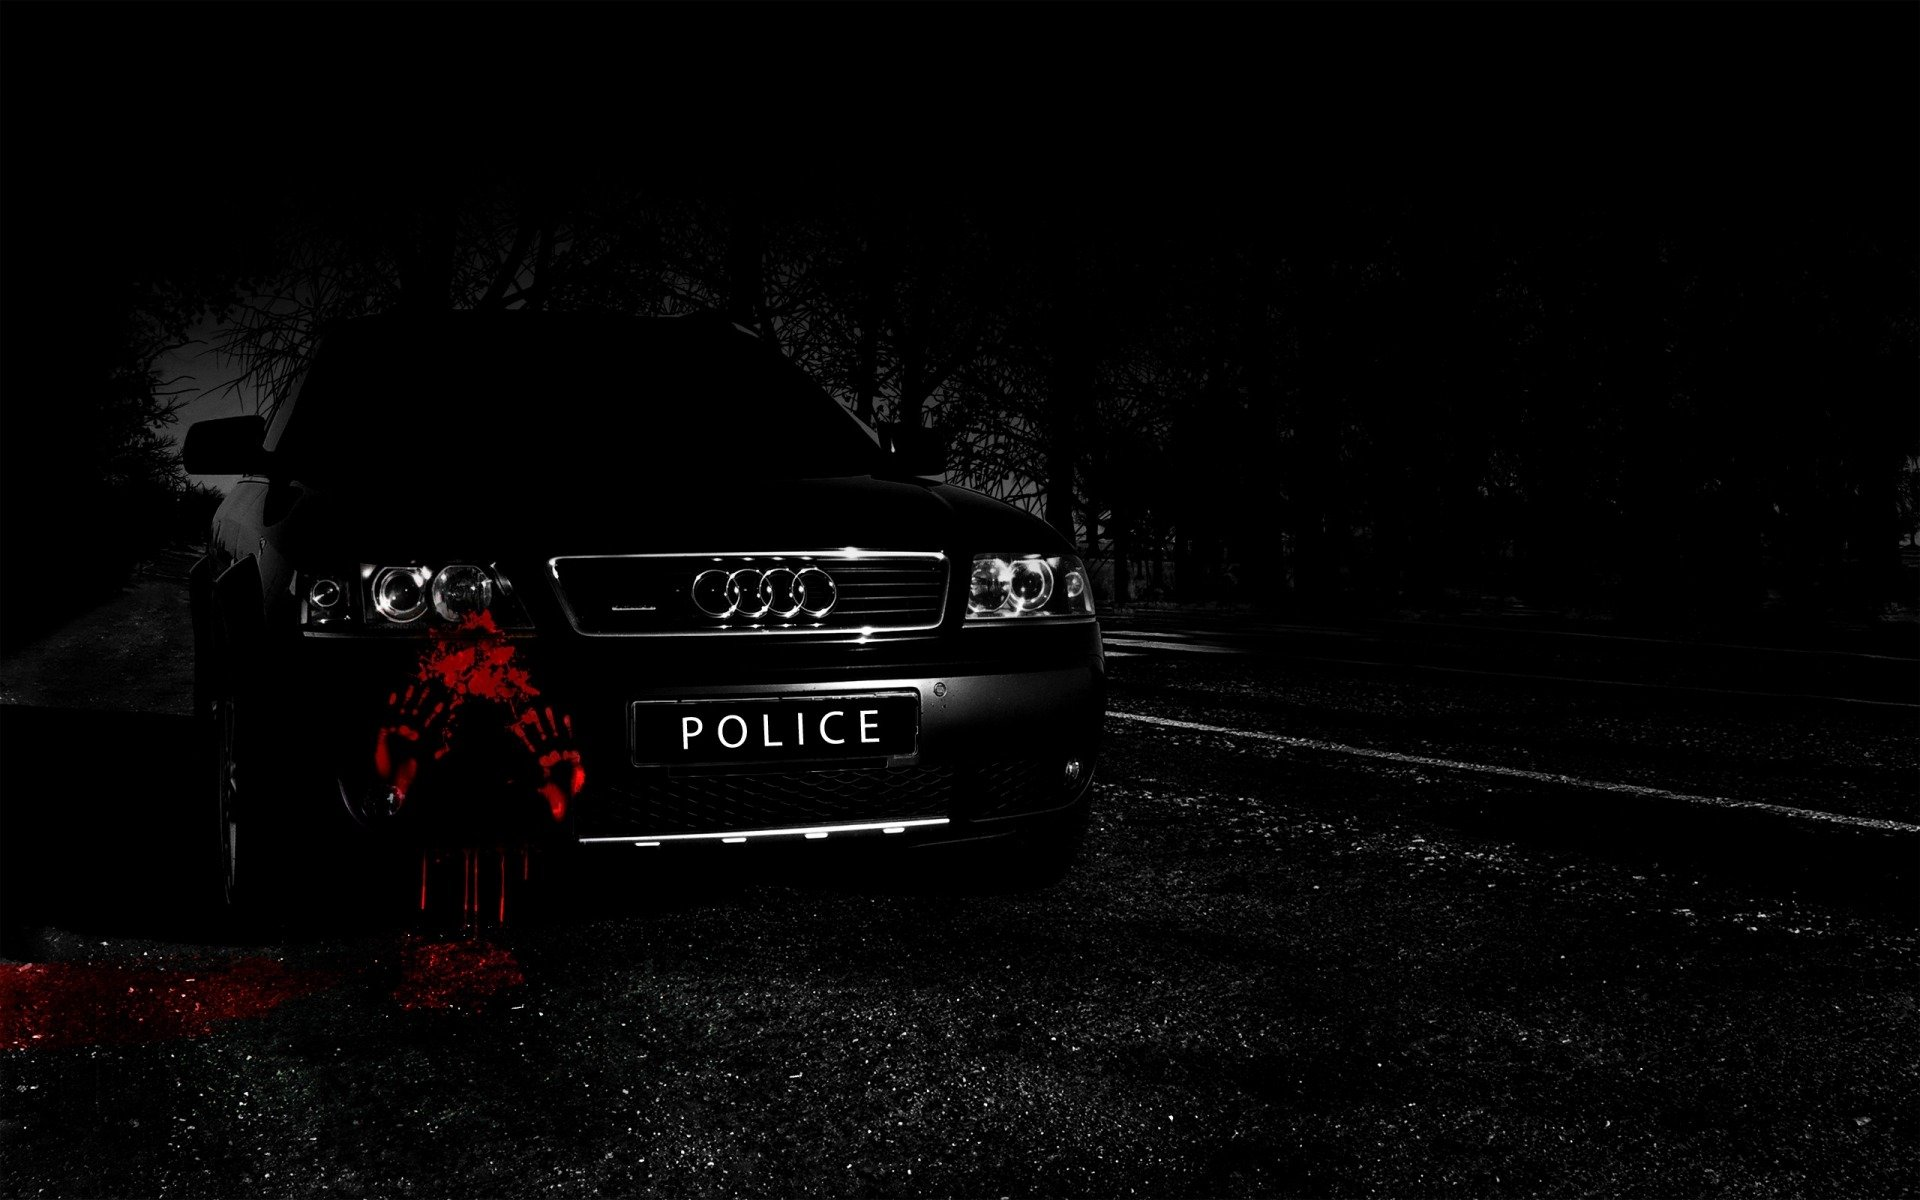 A6 Police Desktop wallpapers 600x1024 1920x1200